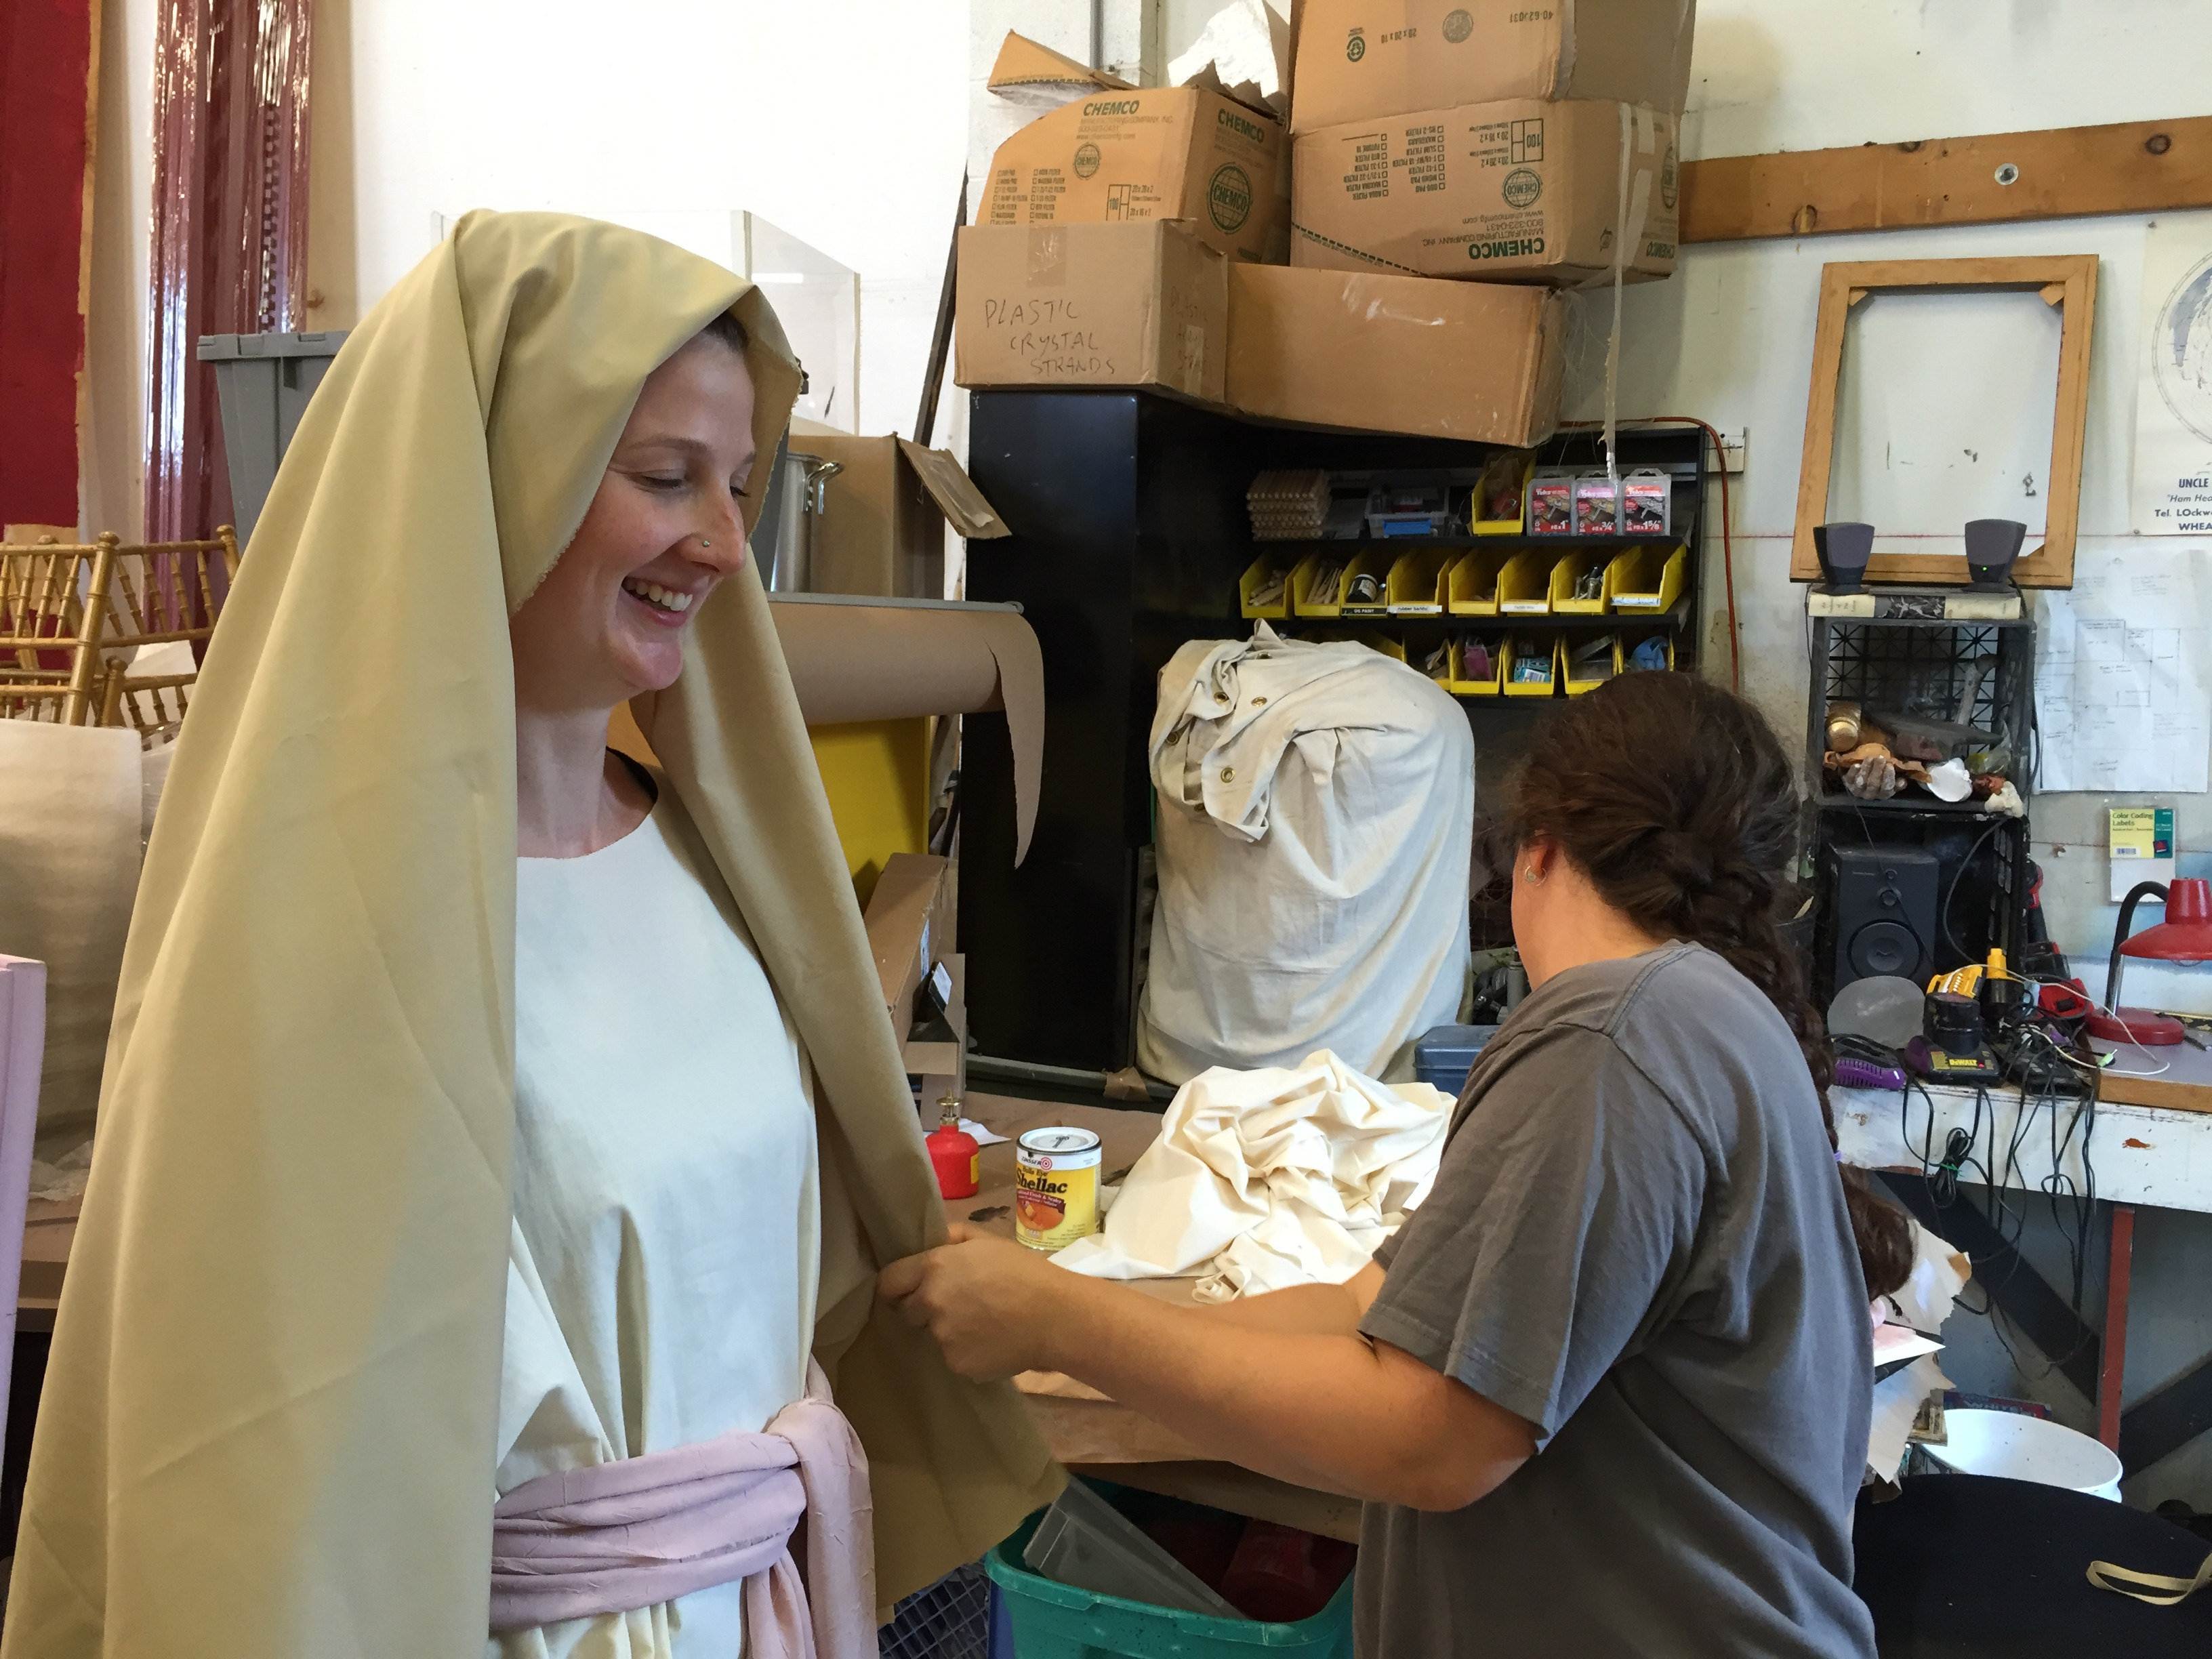 The Paint Shop's Laura Genson poses as a reference for Props Painter/Sculptor Eric Hammesfahr. Eric is working on a Madonna statue to be used for ROMEO & JULIET.